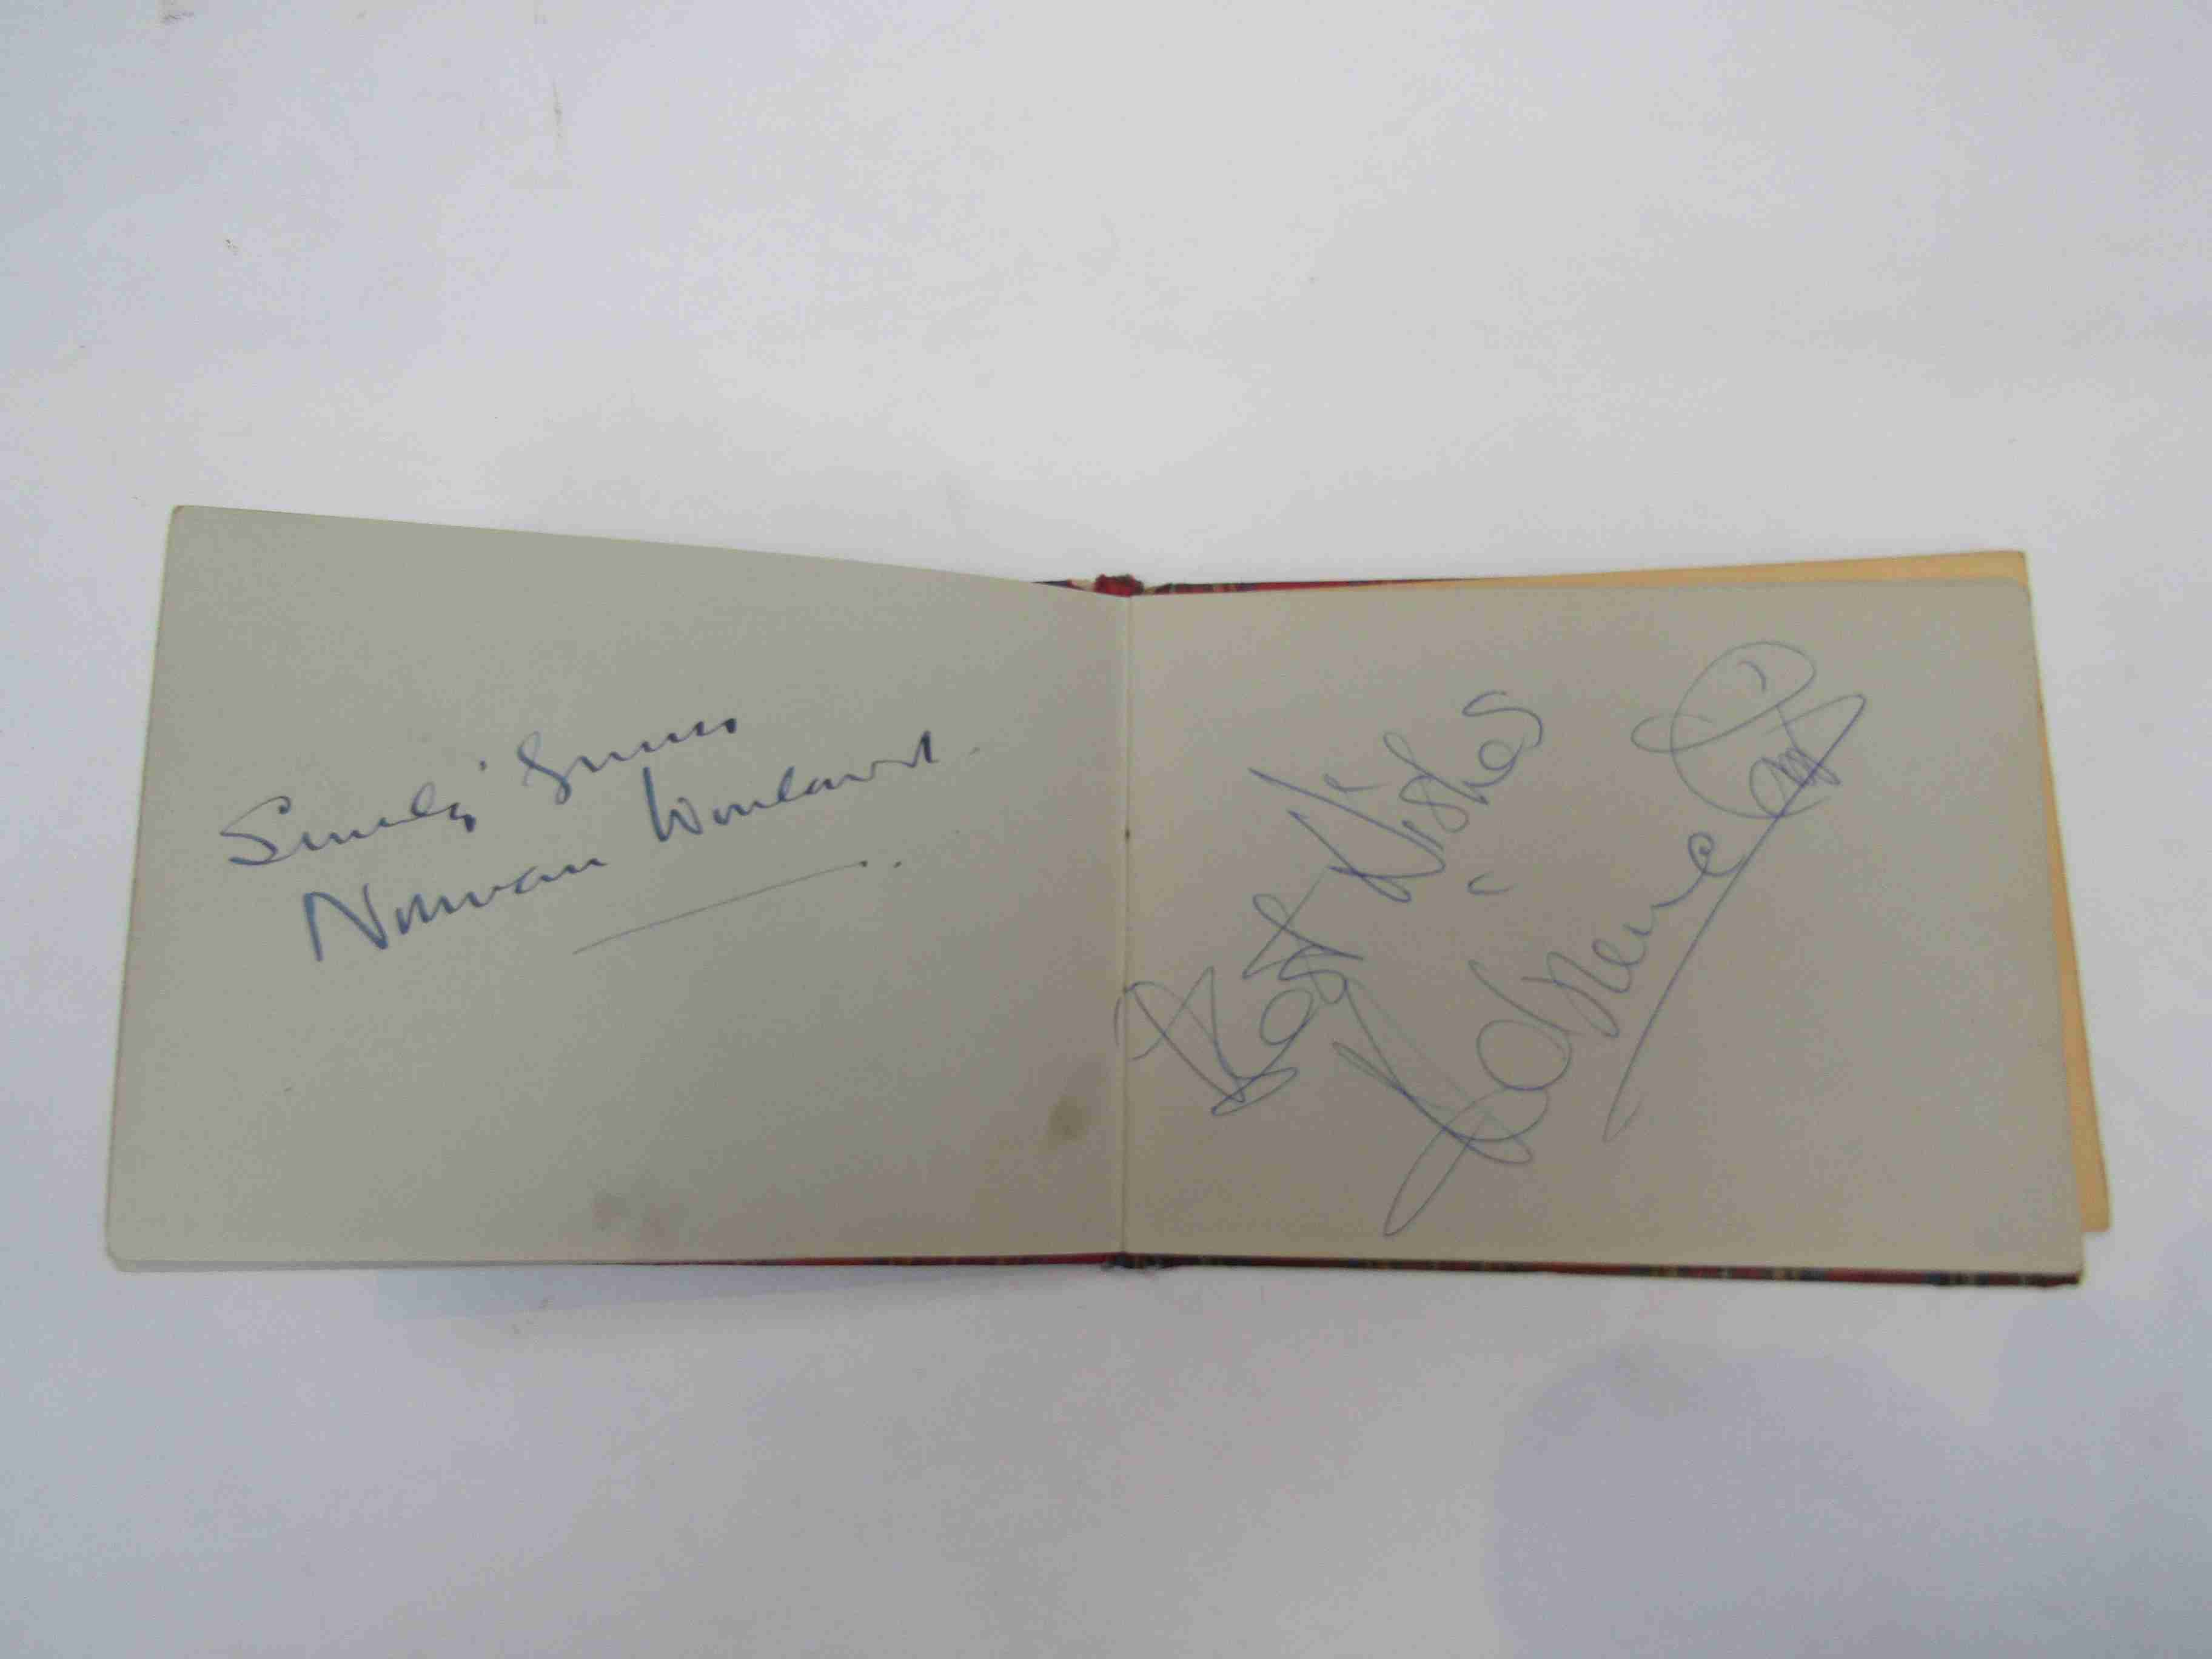 Two 1950s/60s autograph books containing autographs by Benny Hill, Honor Blackman, Barbara Shelley, - Image 19 of 34